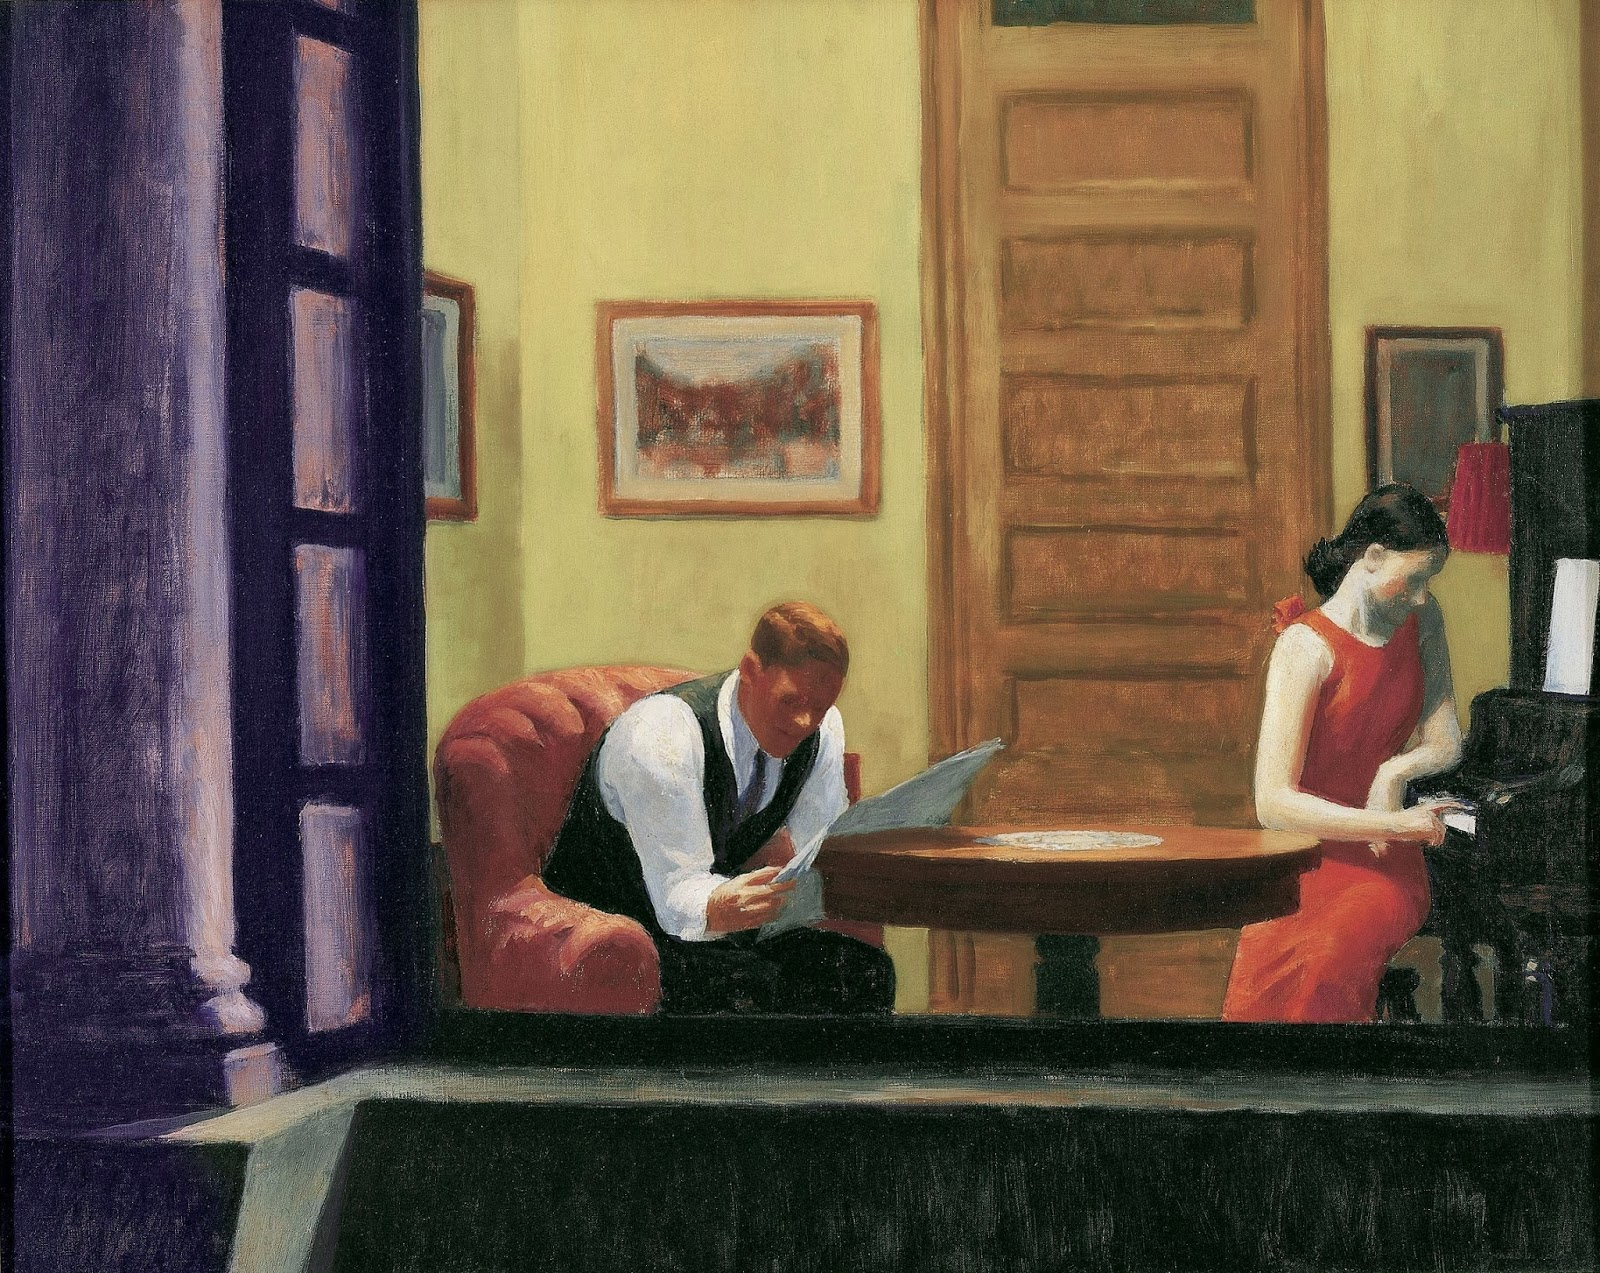 La Chambre A New York Edward Hopper Devoirs En Tout Genre Nighthawks De Edward Hopper